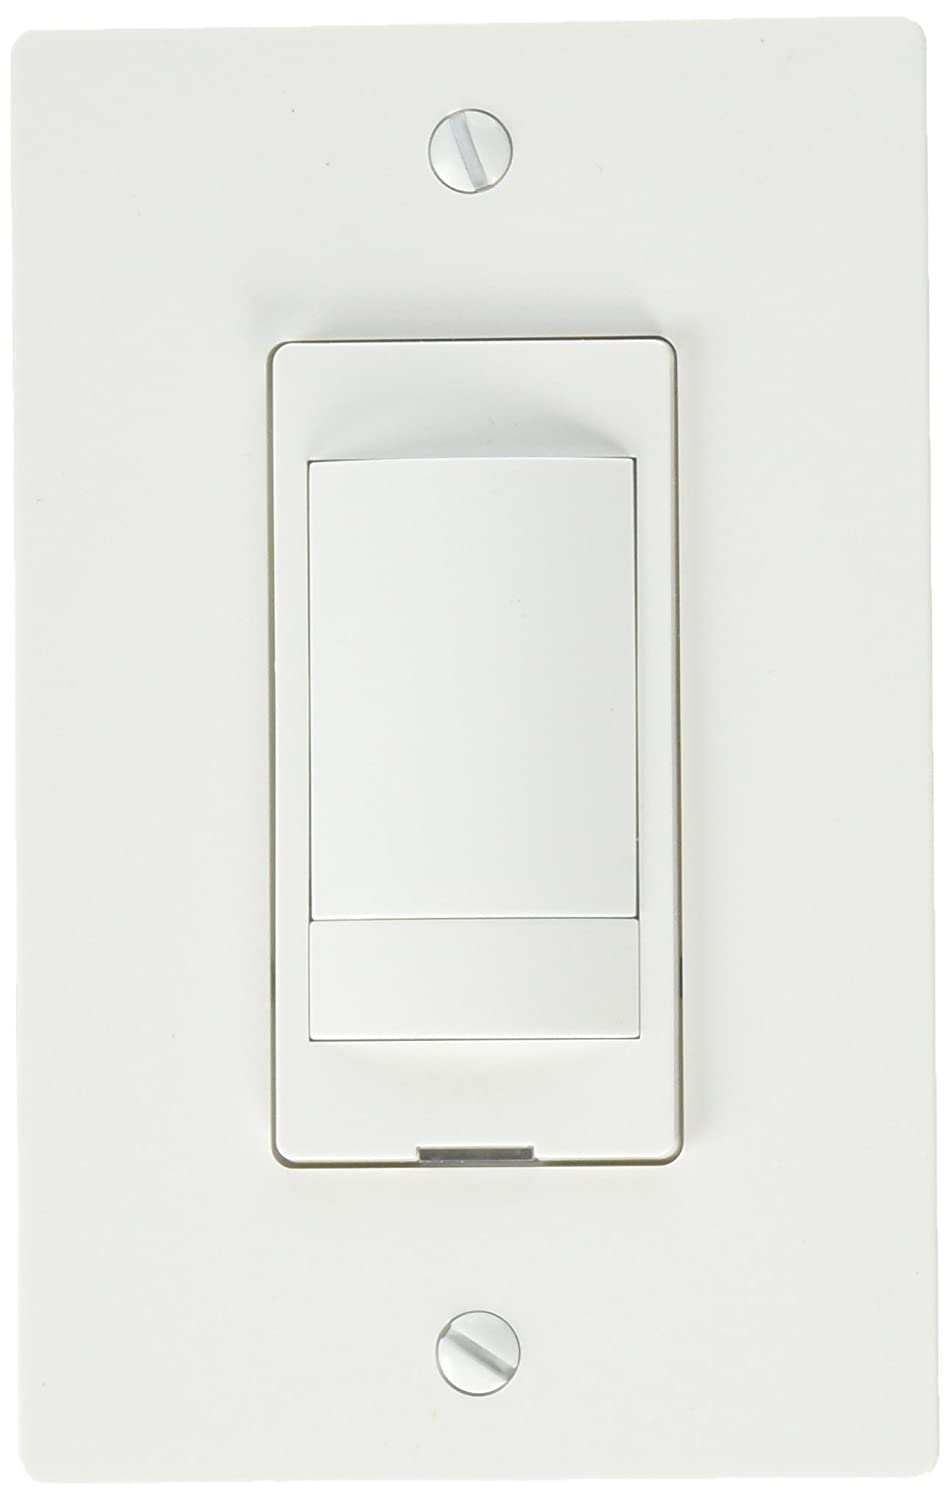 Panasonic Fv Wcd01 W Whispercontrol Countdown Delay Fan Timer Switch Bathroom And Light Wiring Exhaust White Home Improvement